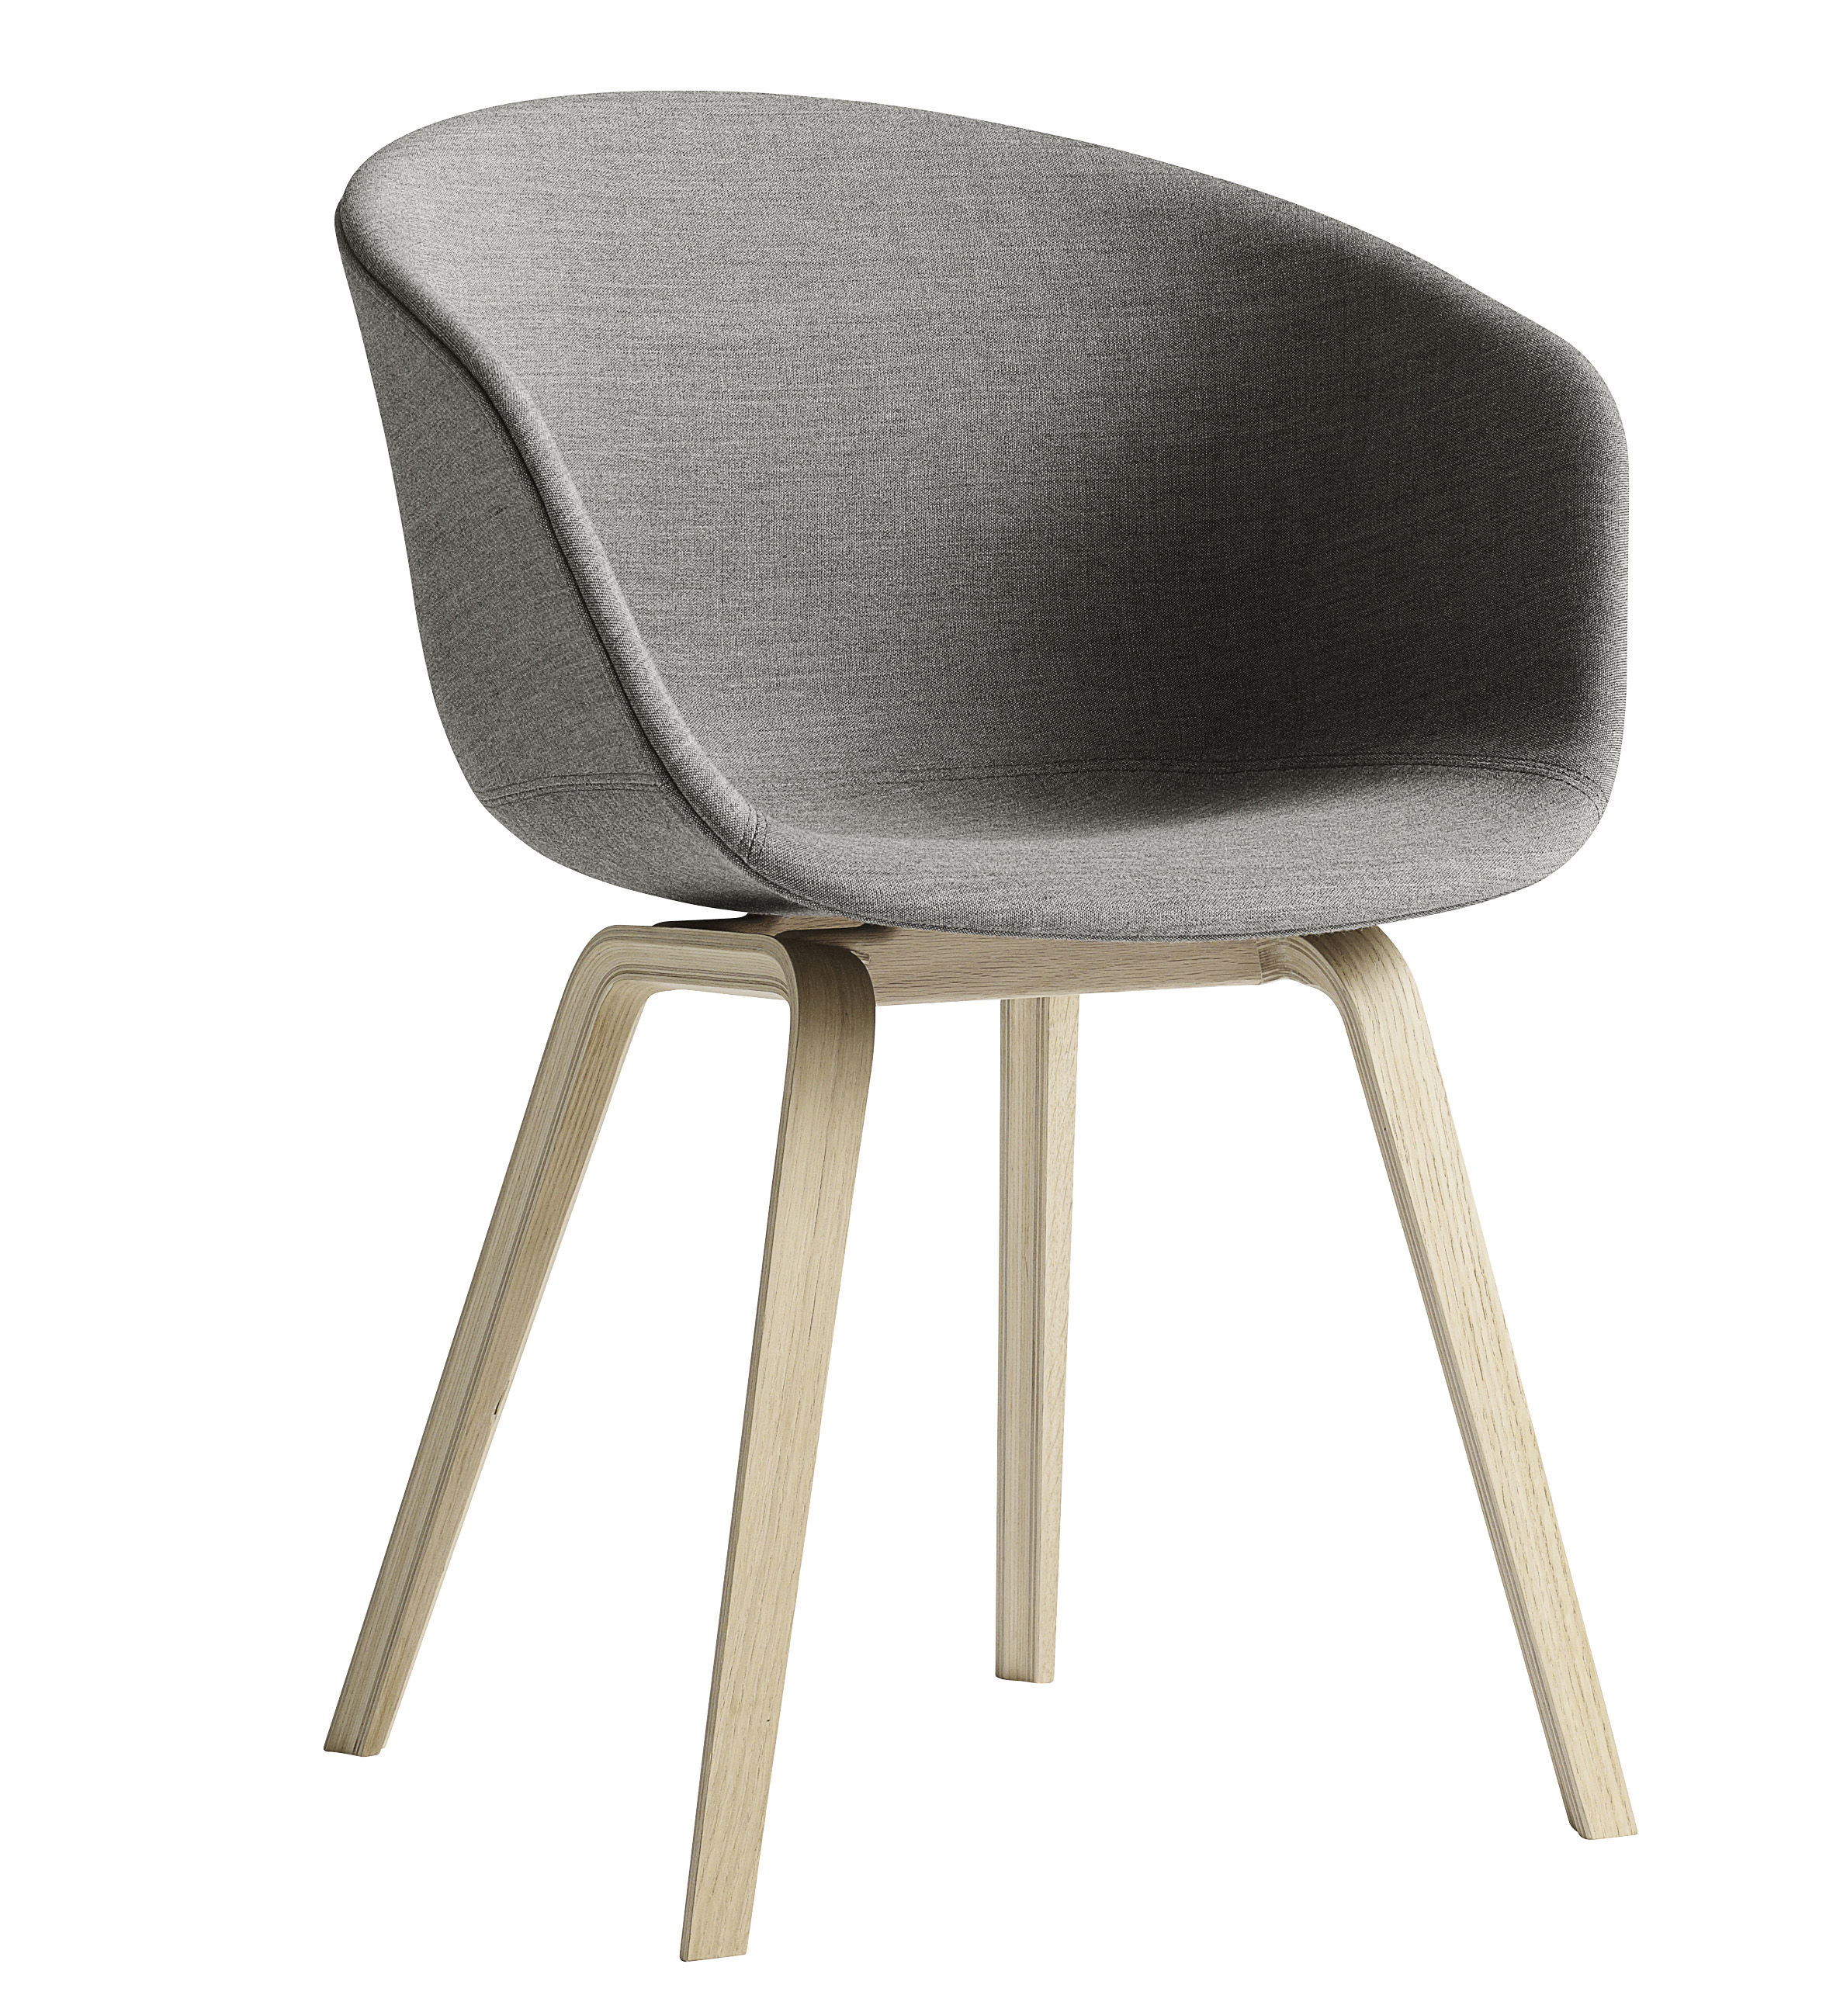 Furniture - Chairs - About a chair AAC23 Padded armchair - 4 legs /Full fabric by Hay - Medium grey / Natural oak feet - , Fabric, Foam, Polypropylene